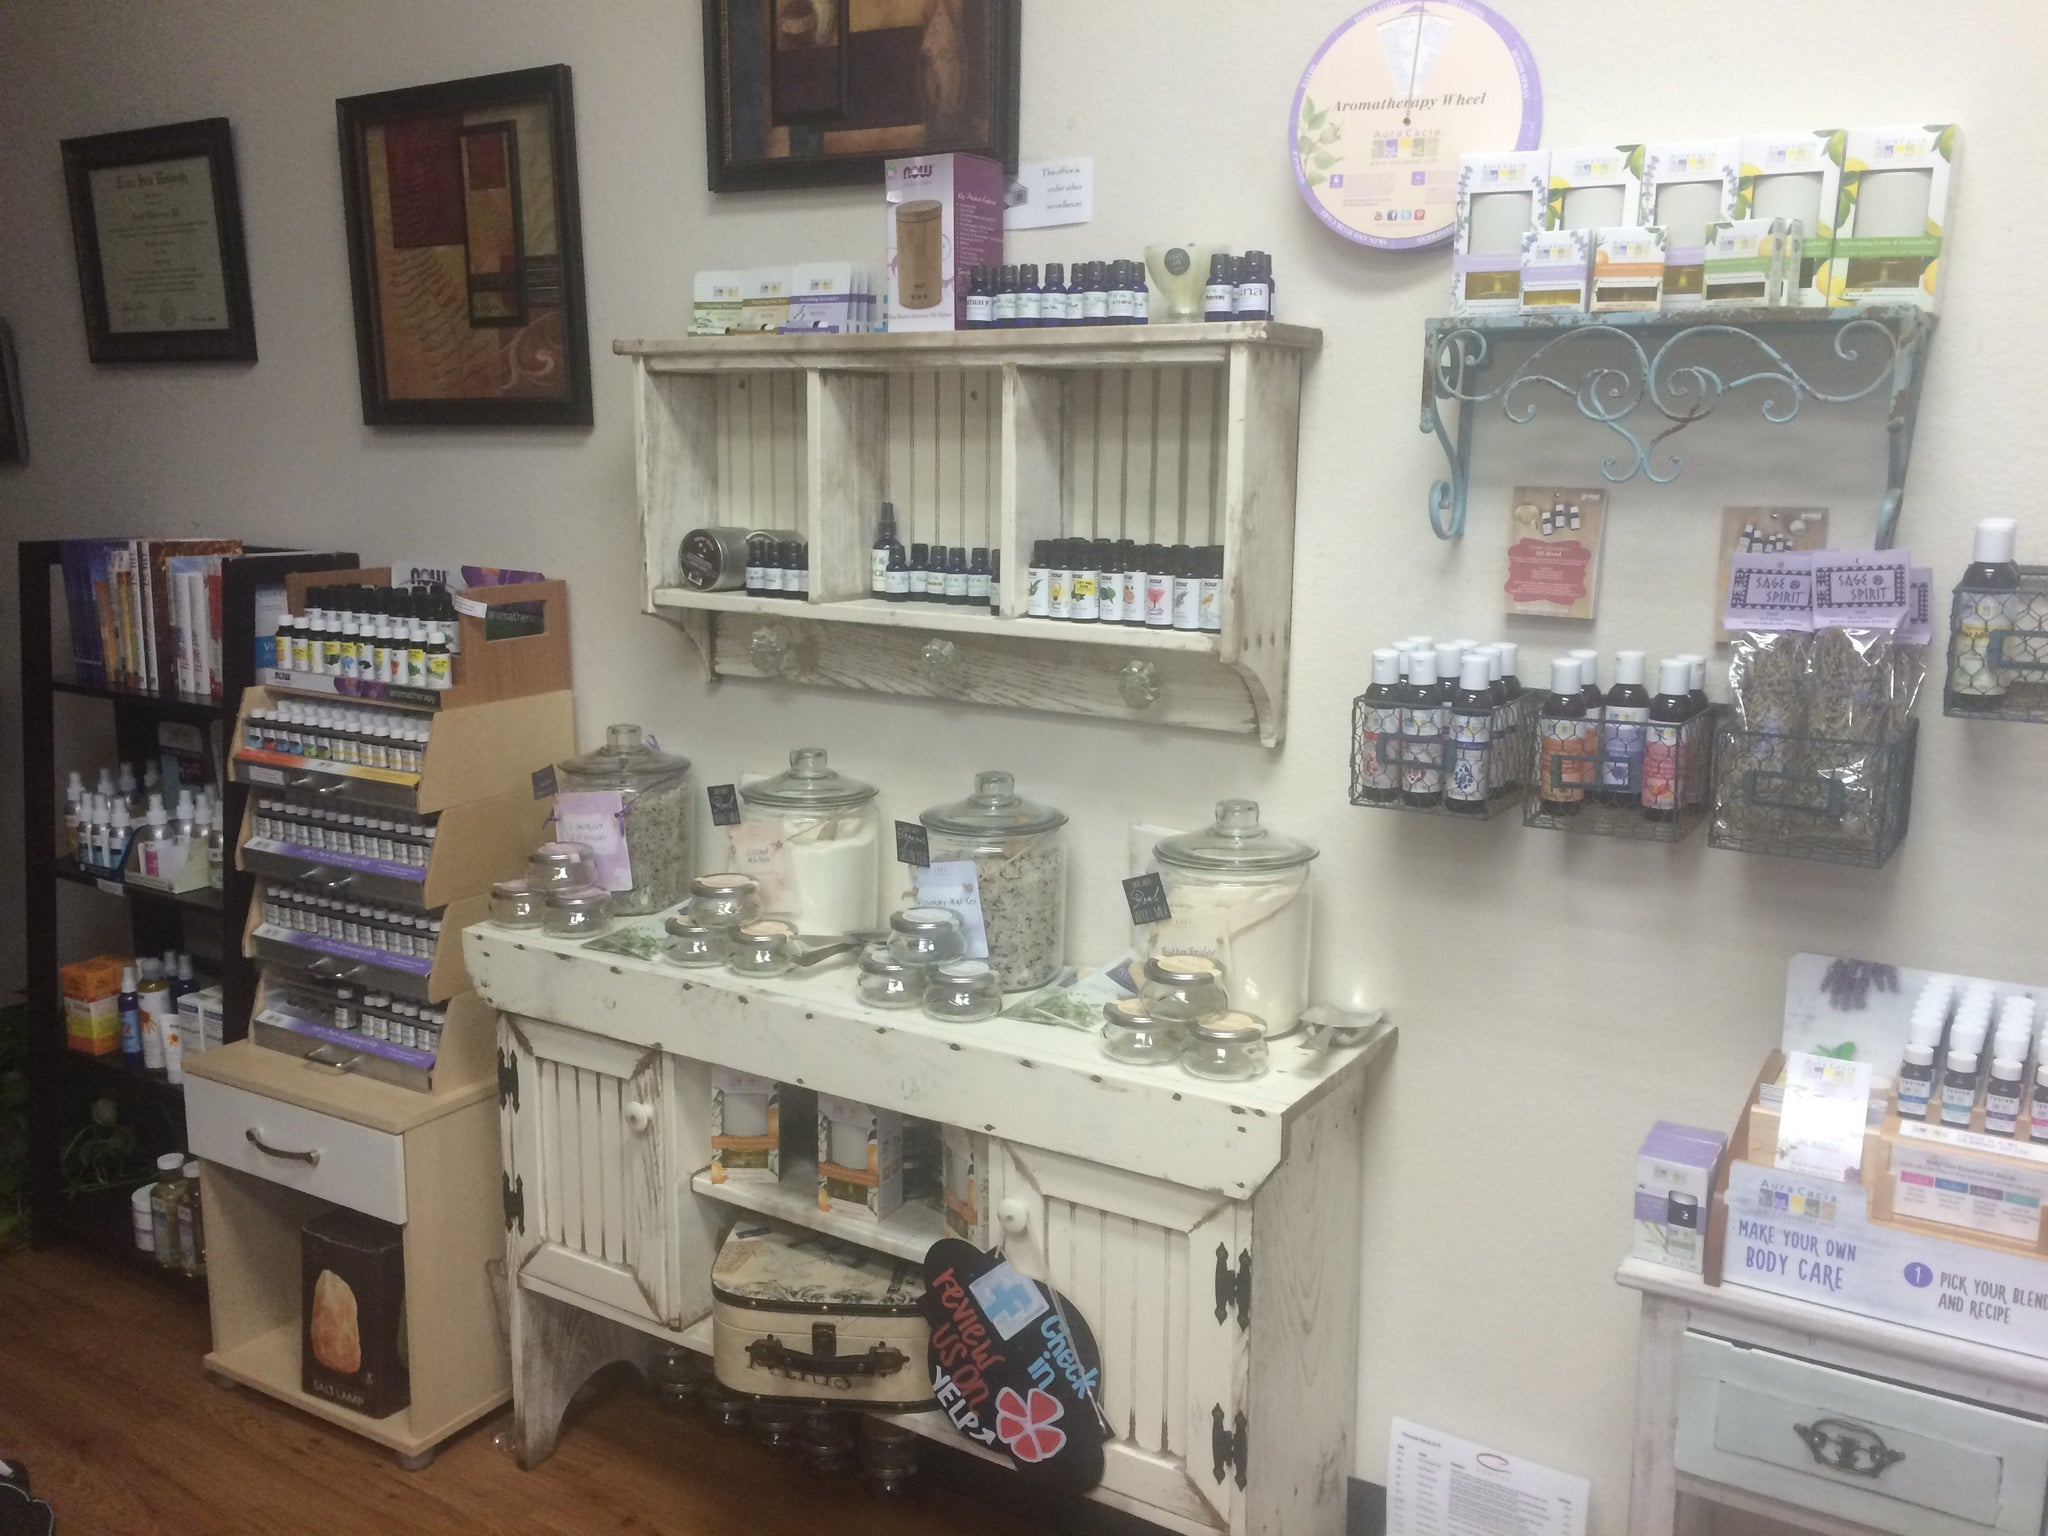 "<h1 class=""visually-hidden"">Hands On Healing Boutique: Skin Care</h1>"